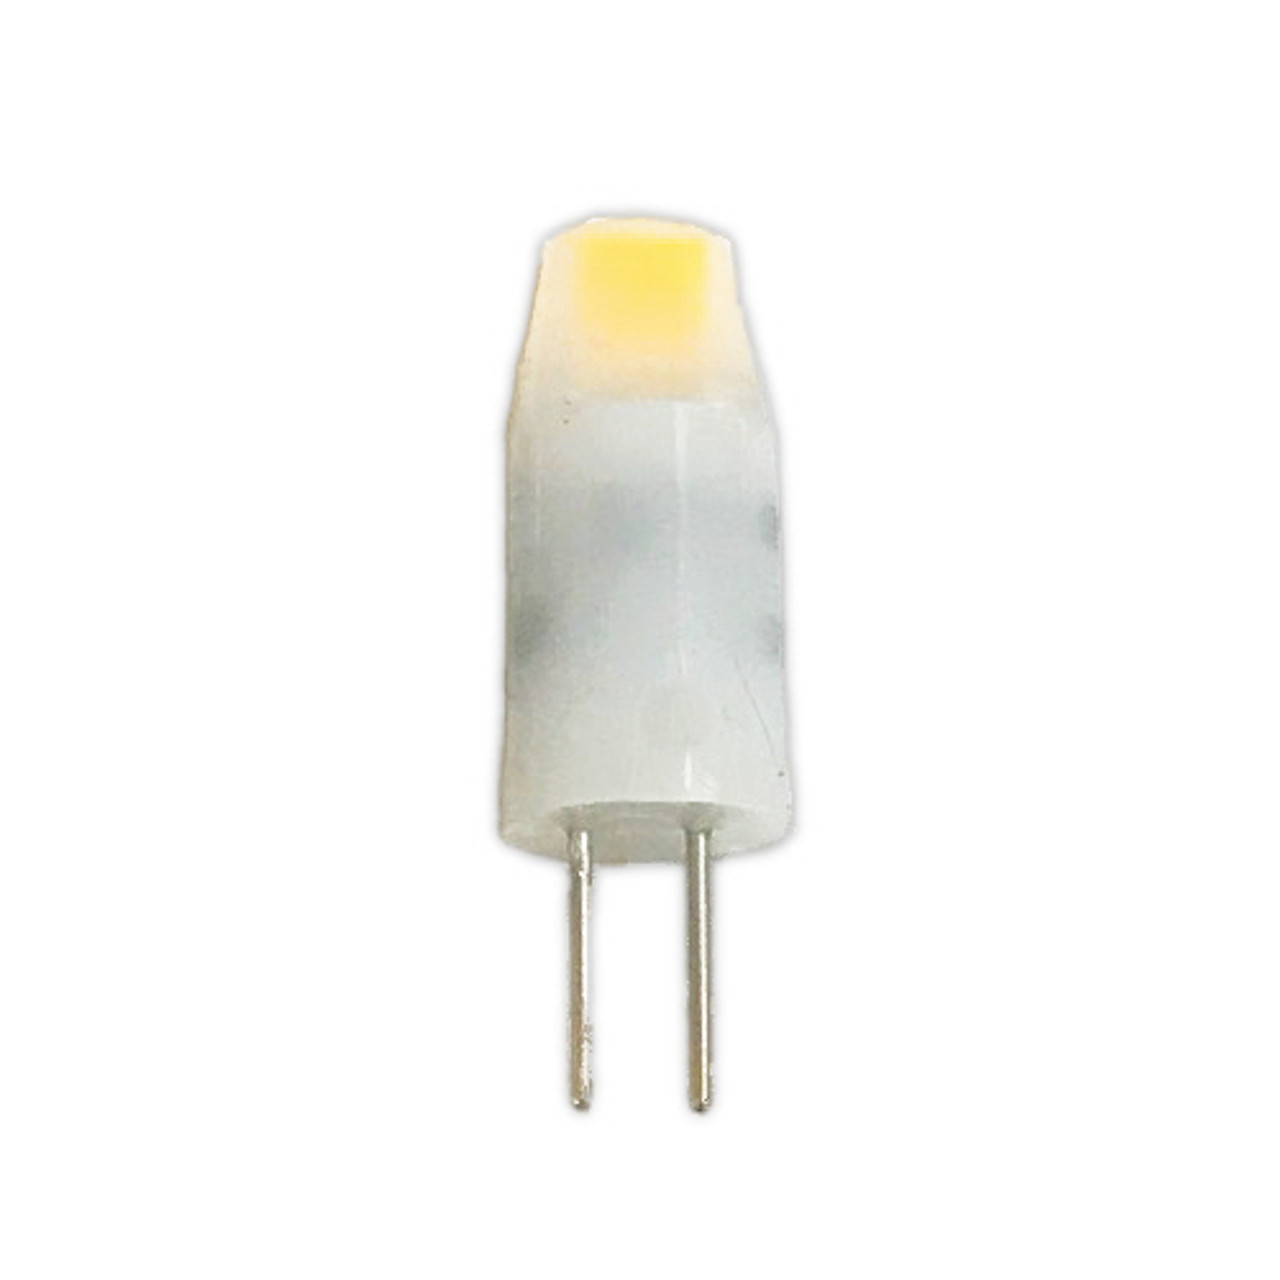 Replaces 10W G4 halogen